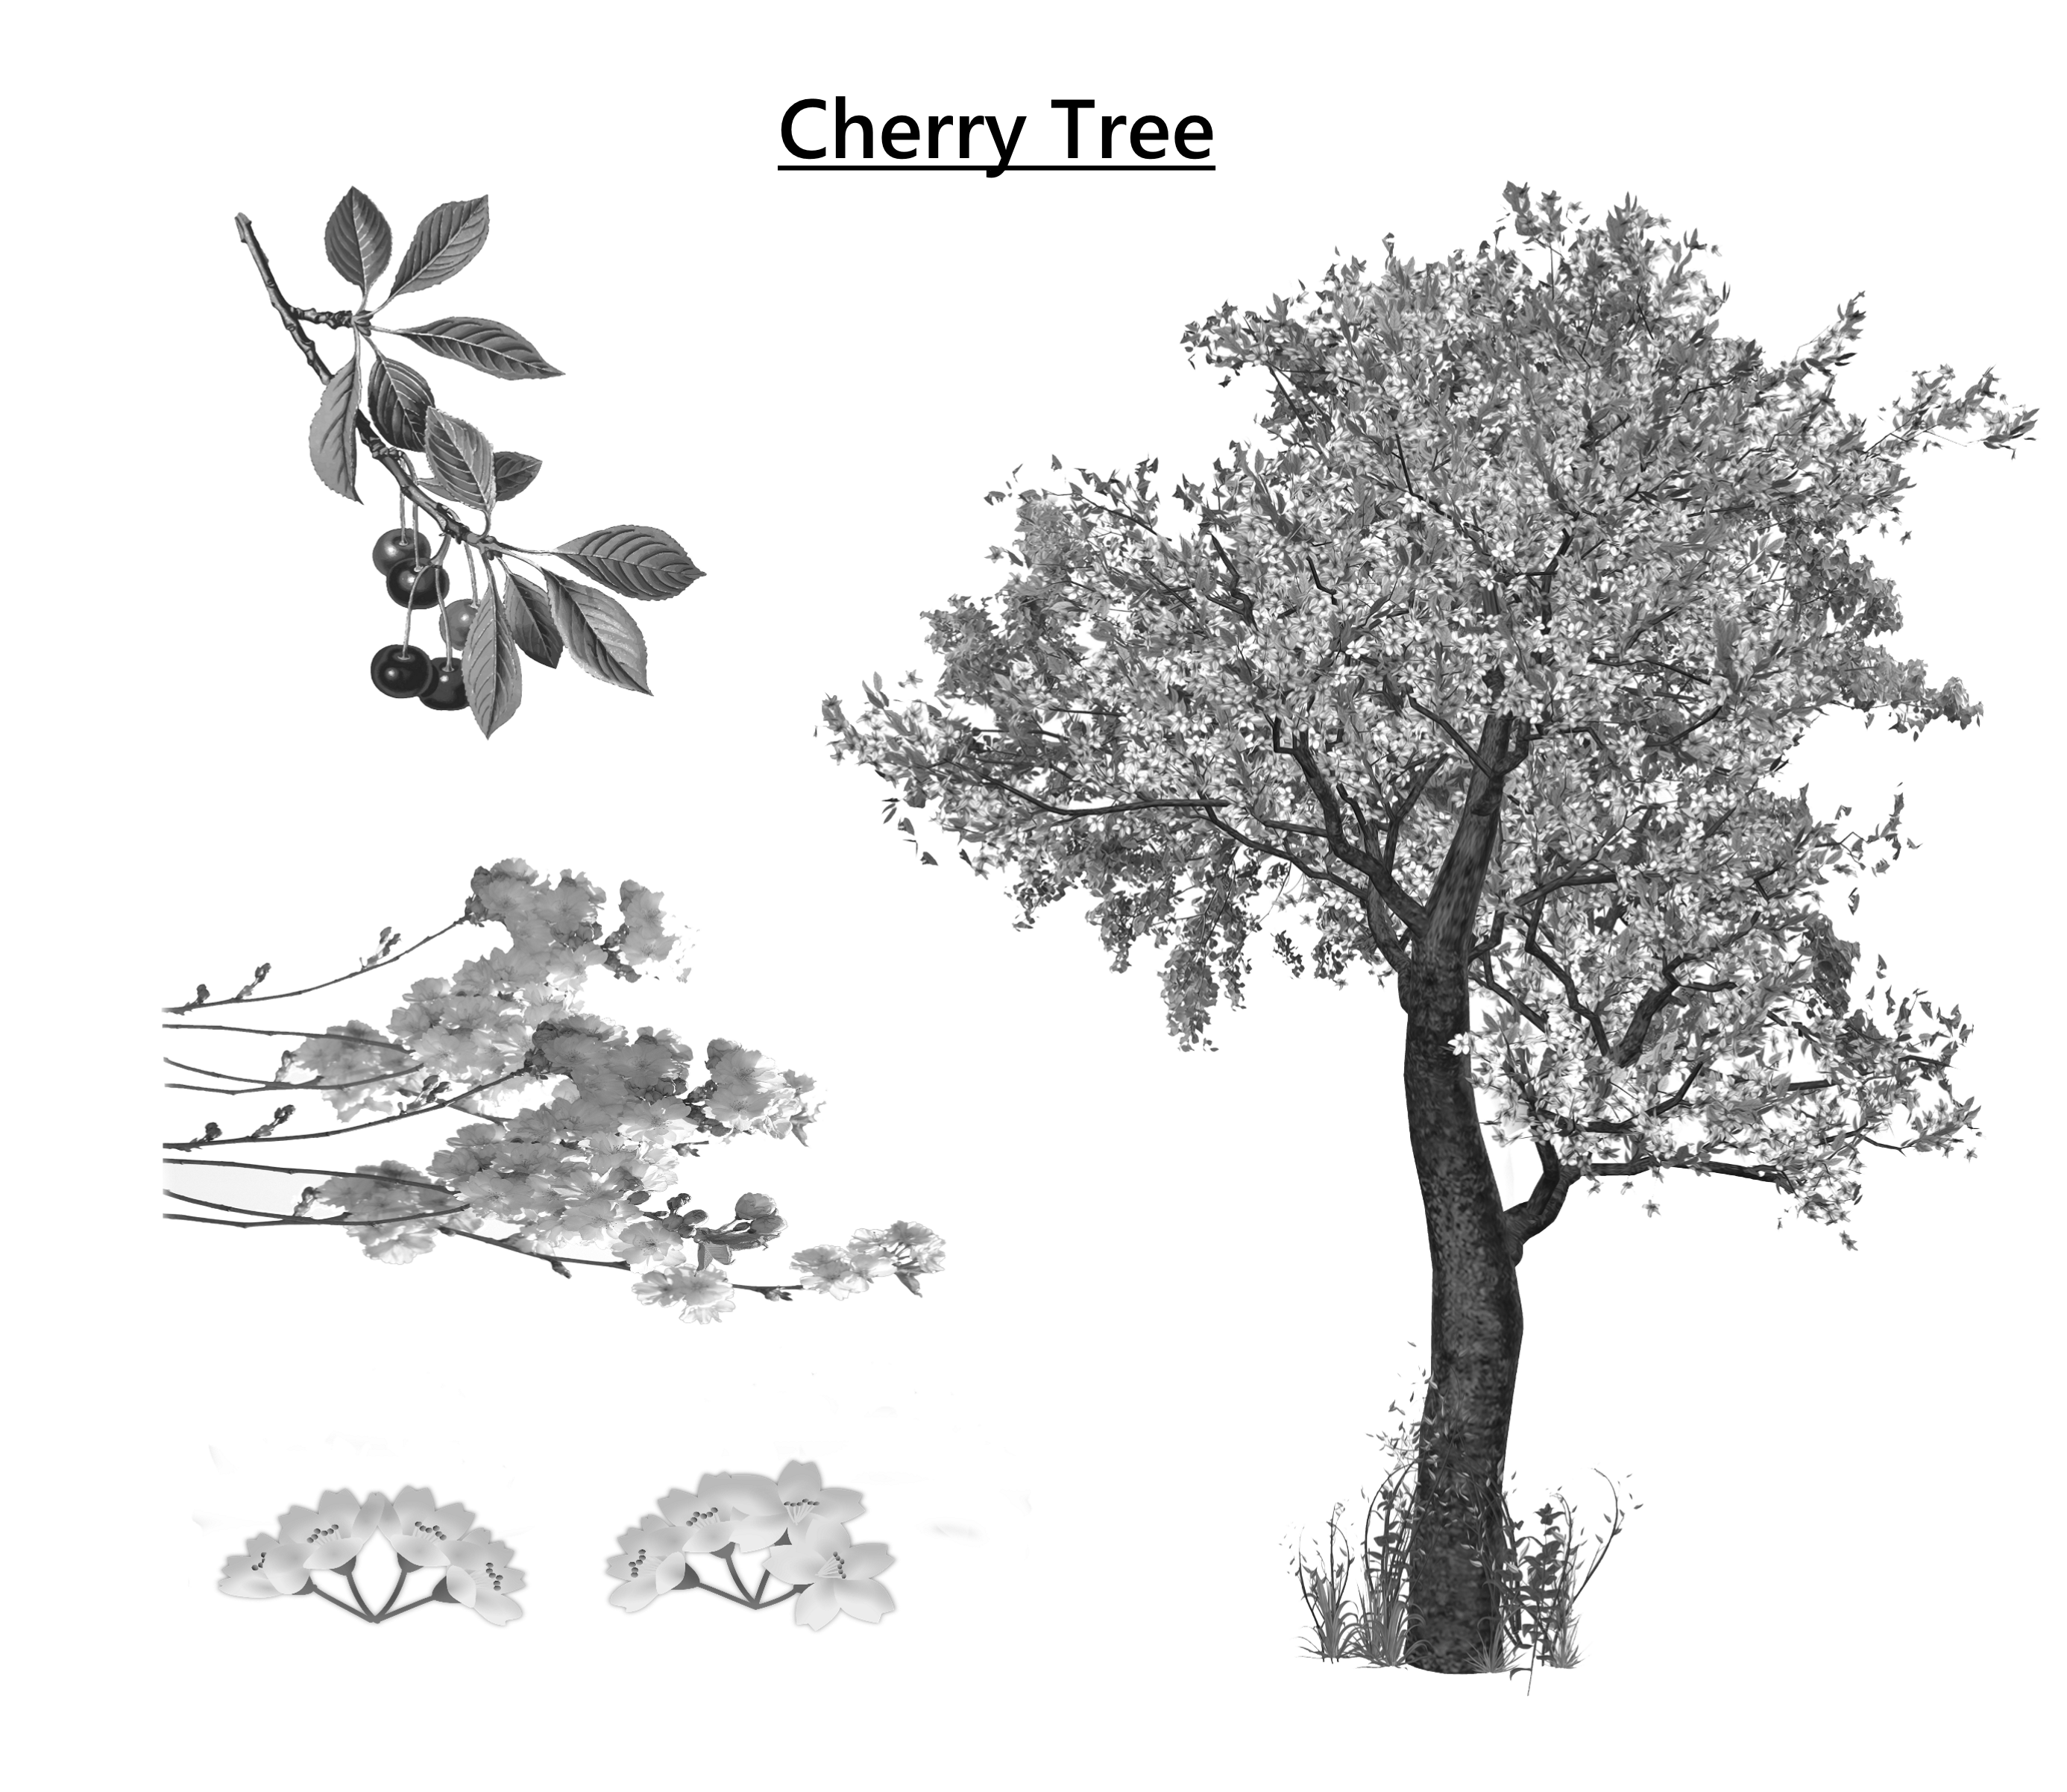 treecherrytree